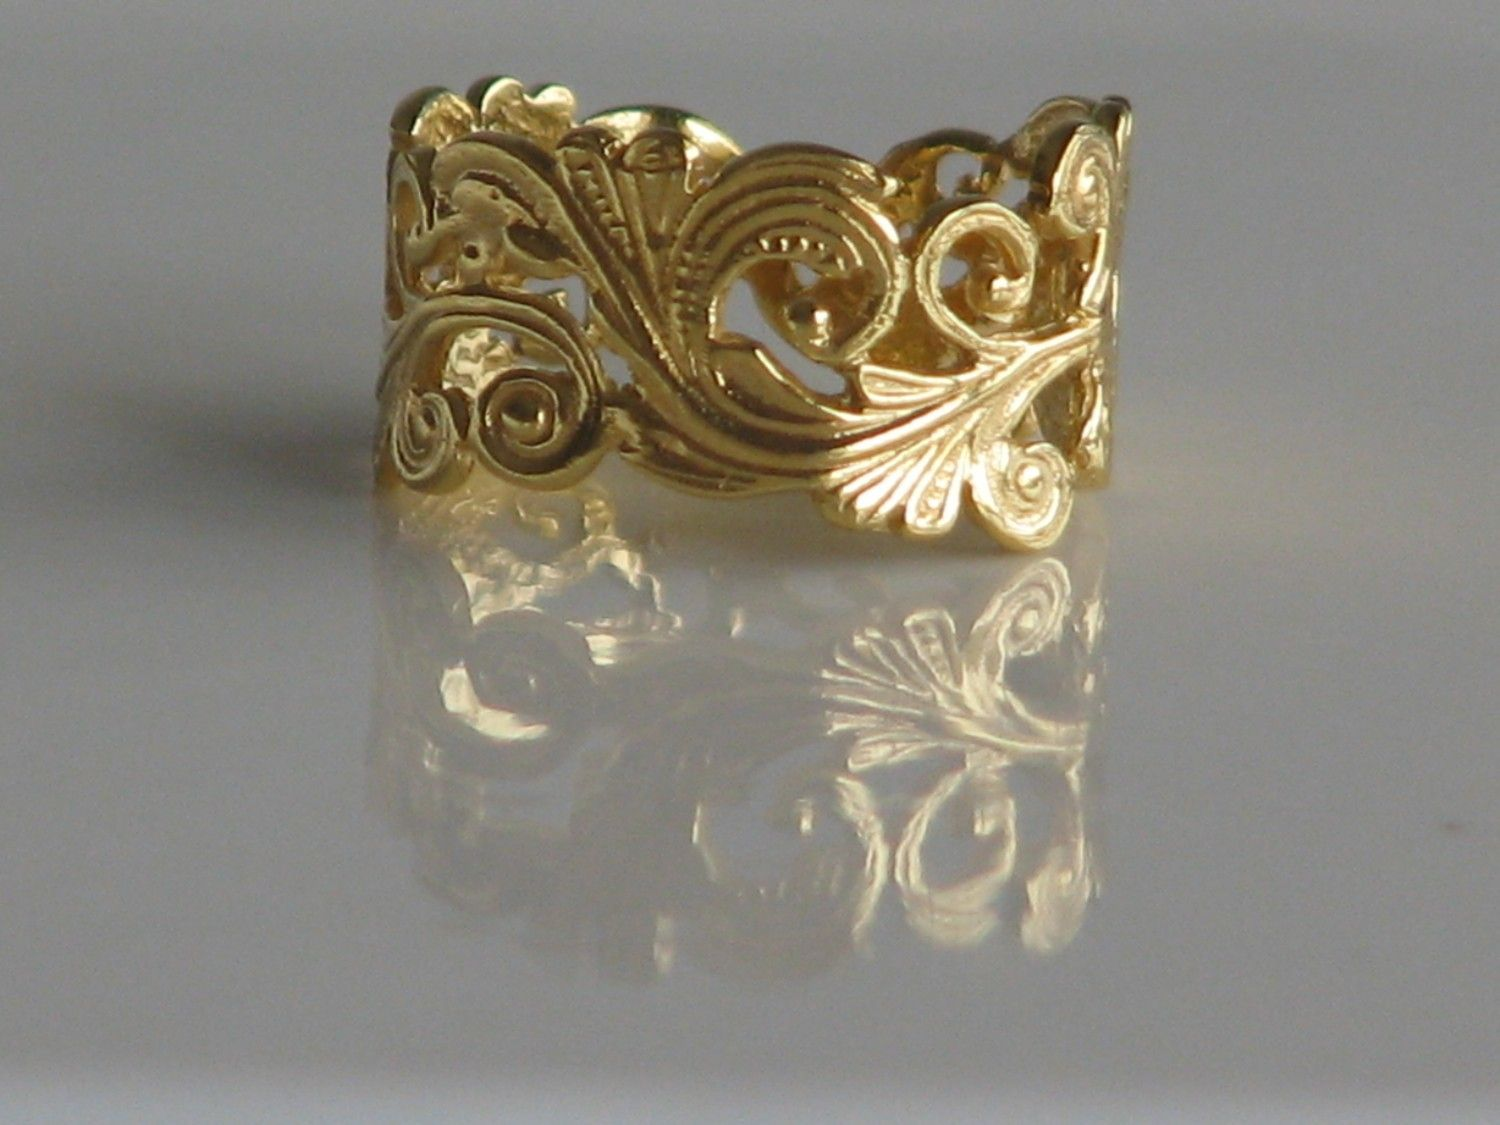 Rose Gold Jewellery Broad Band Filigree Ring With Unique